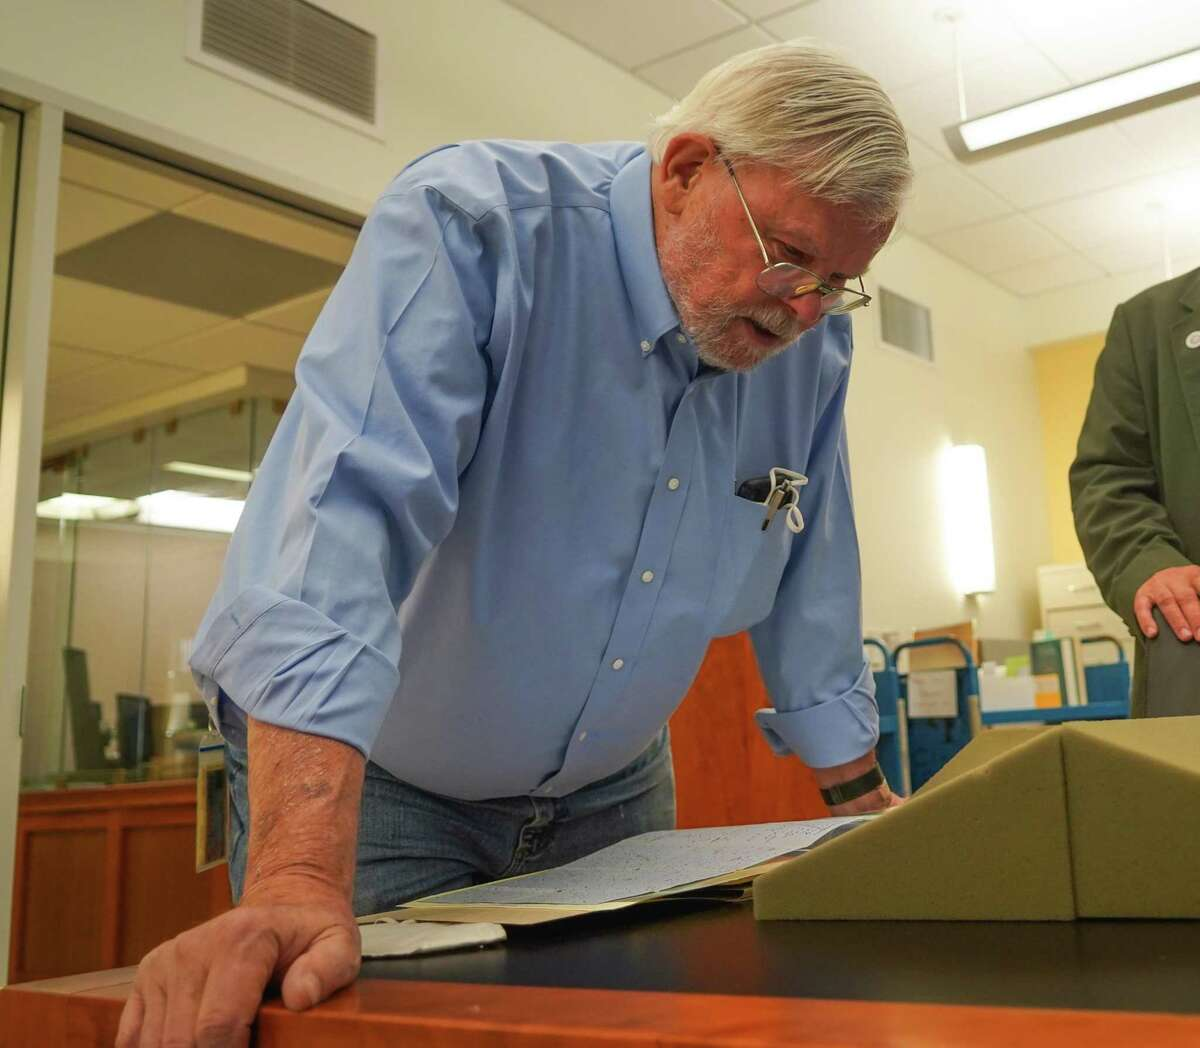 Bob Hirst, general editor of the Mark Twain Papers & Project, inspects the 1861 letter, a new aquisition by the Bancroft Library.